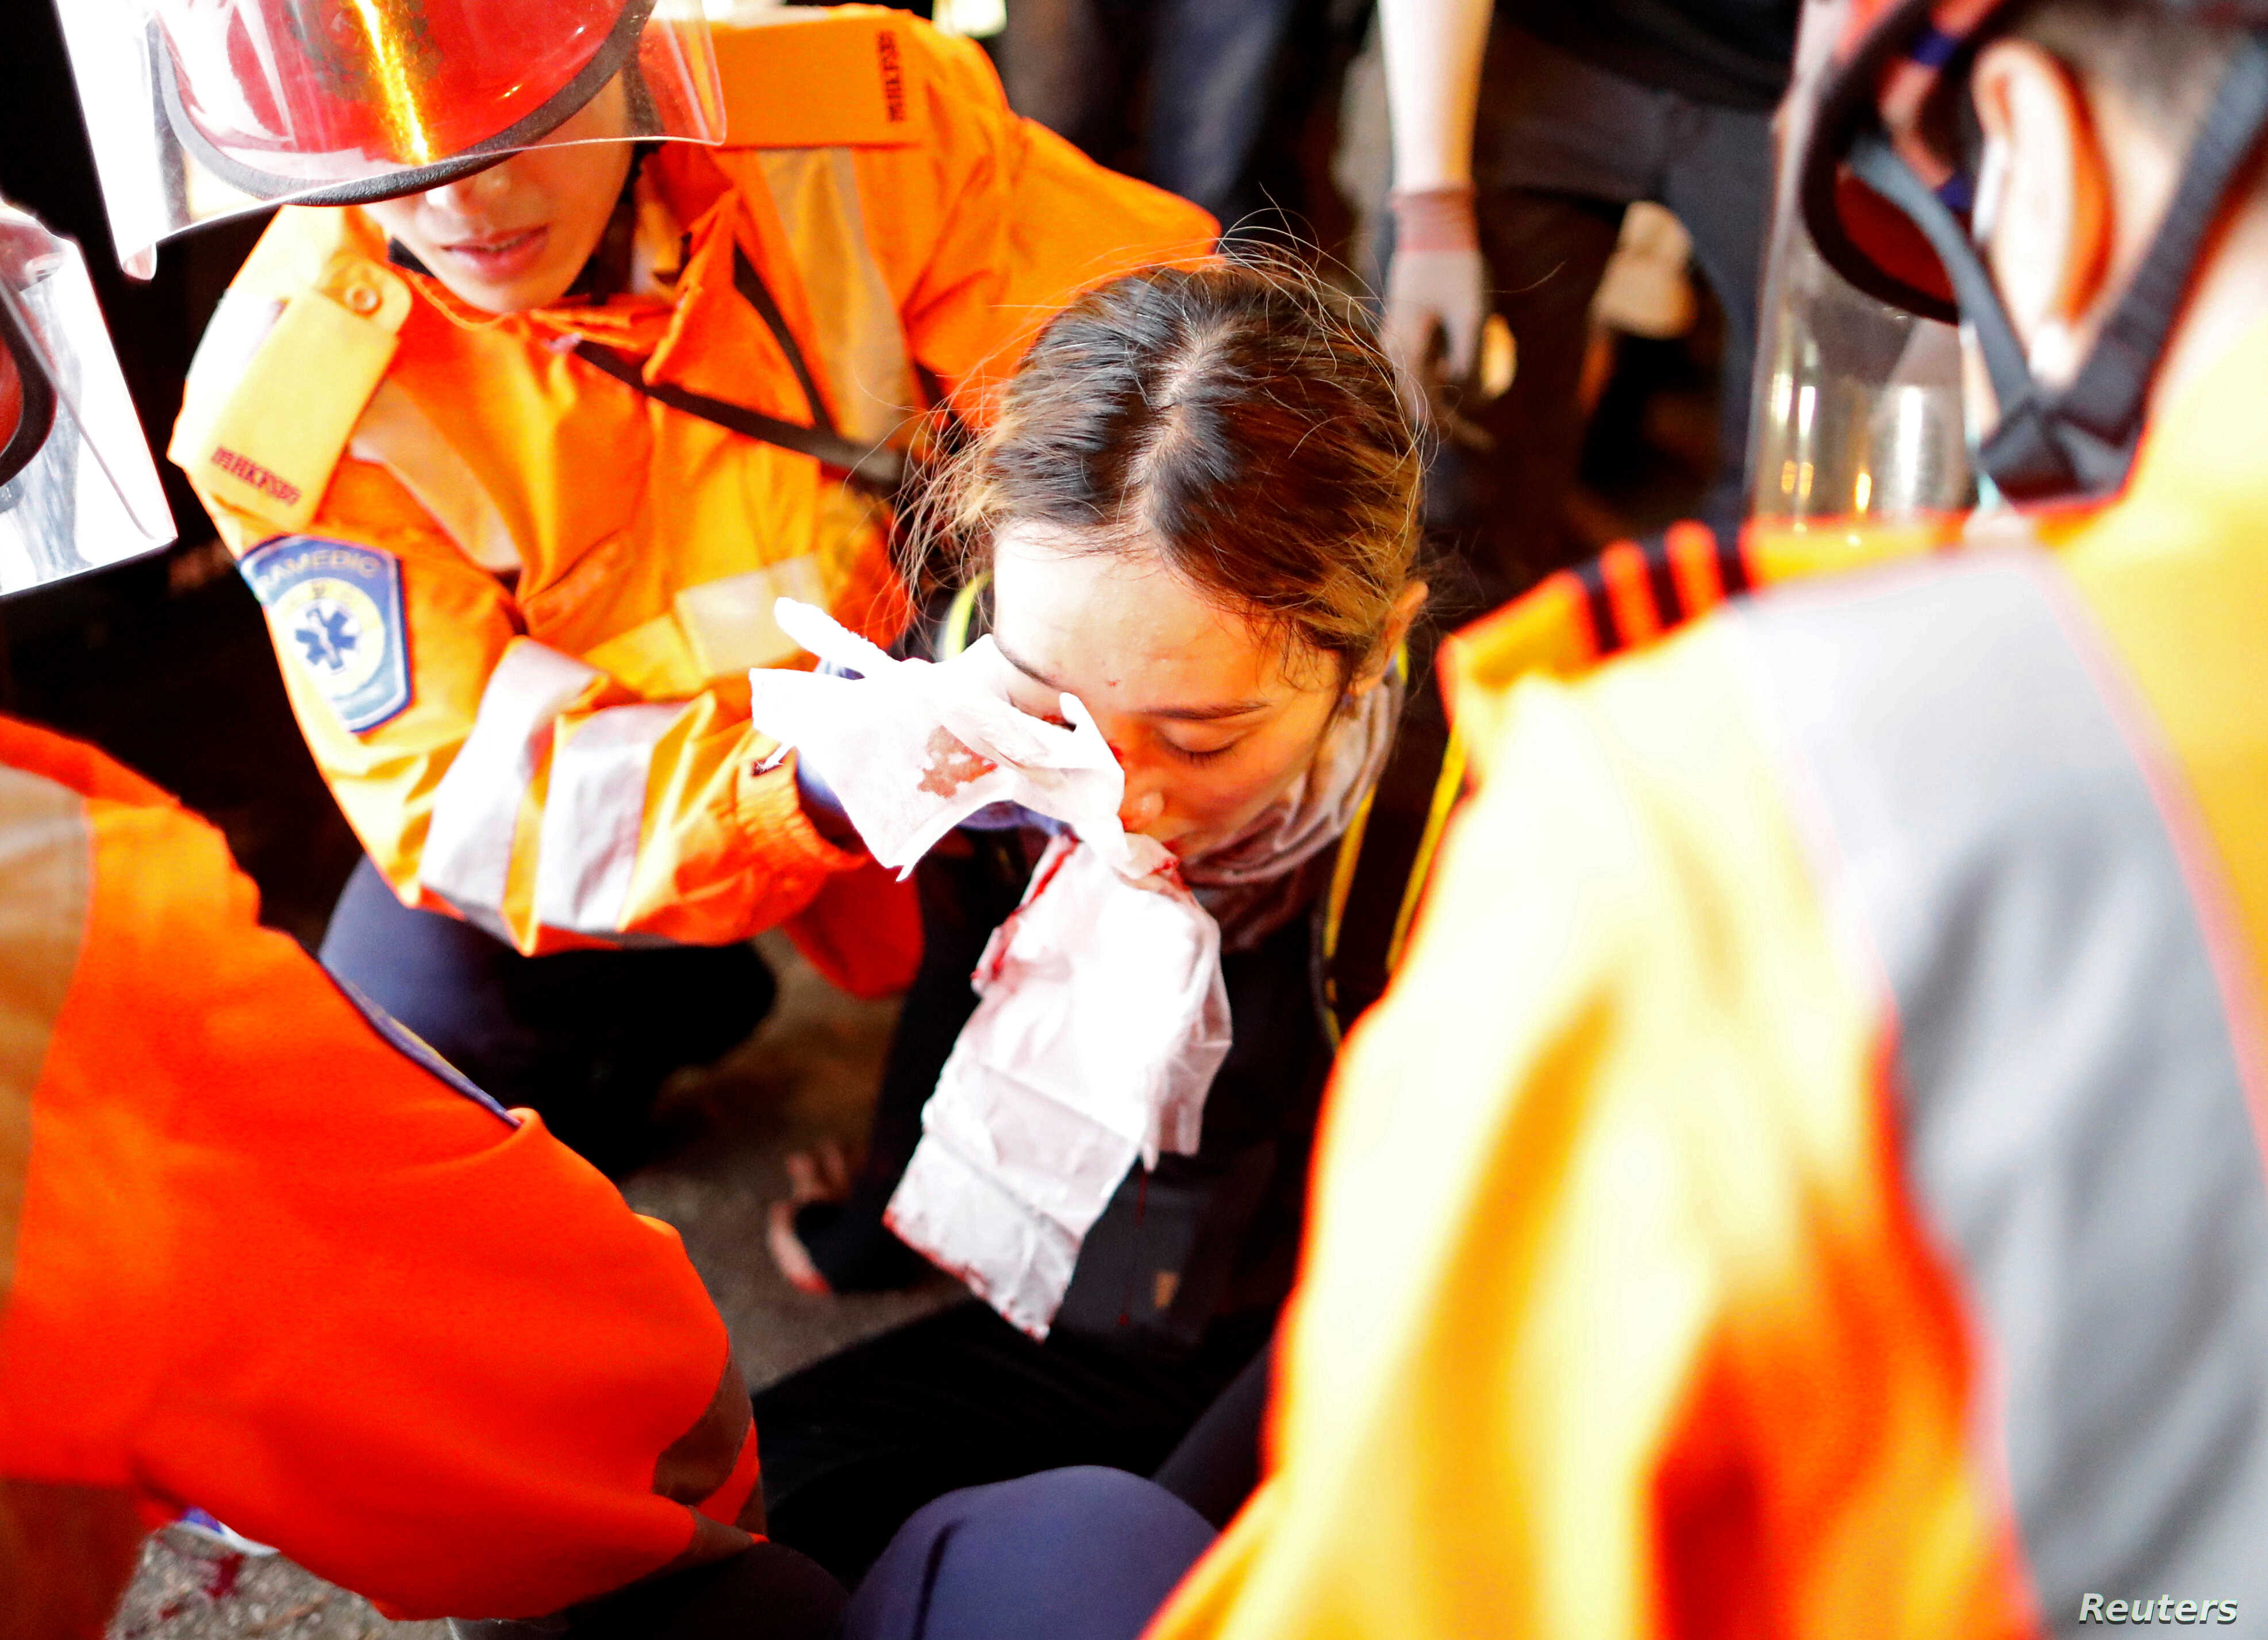 An injured young female medic receives medical assistance after being hit by a pellet round in the right eye during a demonstration in Tsim Sha Tsui neighbourhood in Hong Kong, Aug. 11, 2019.